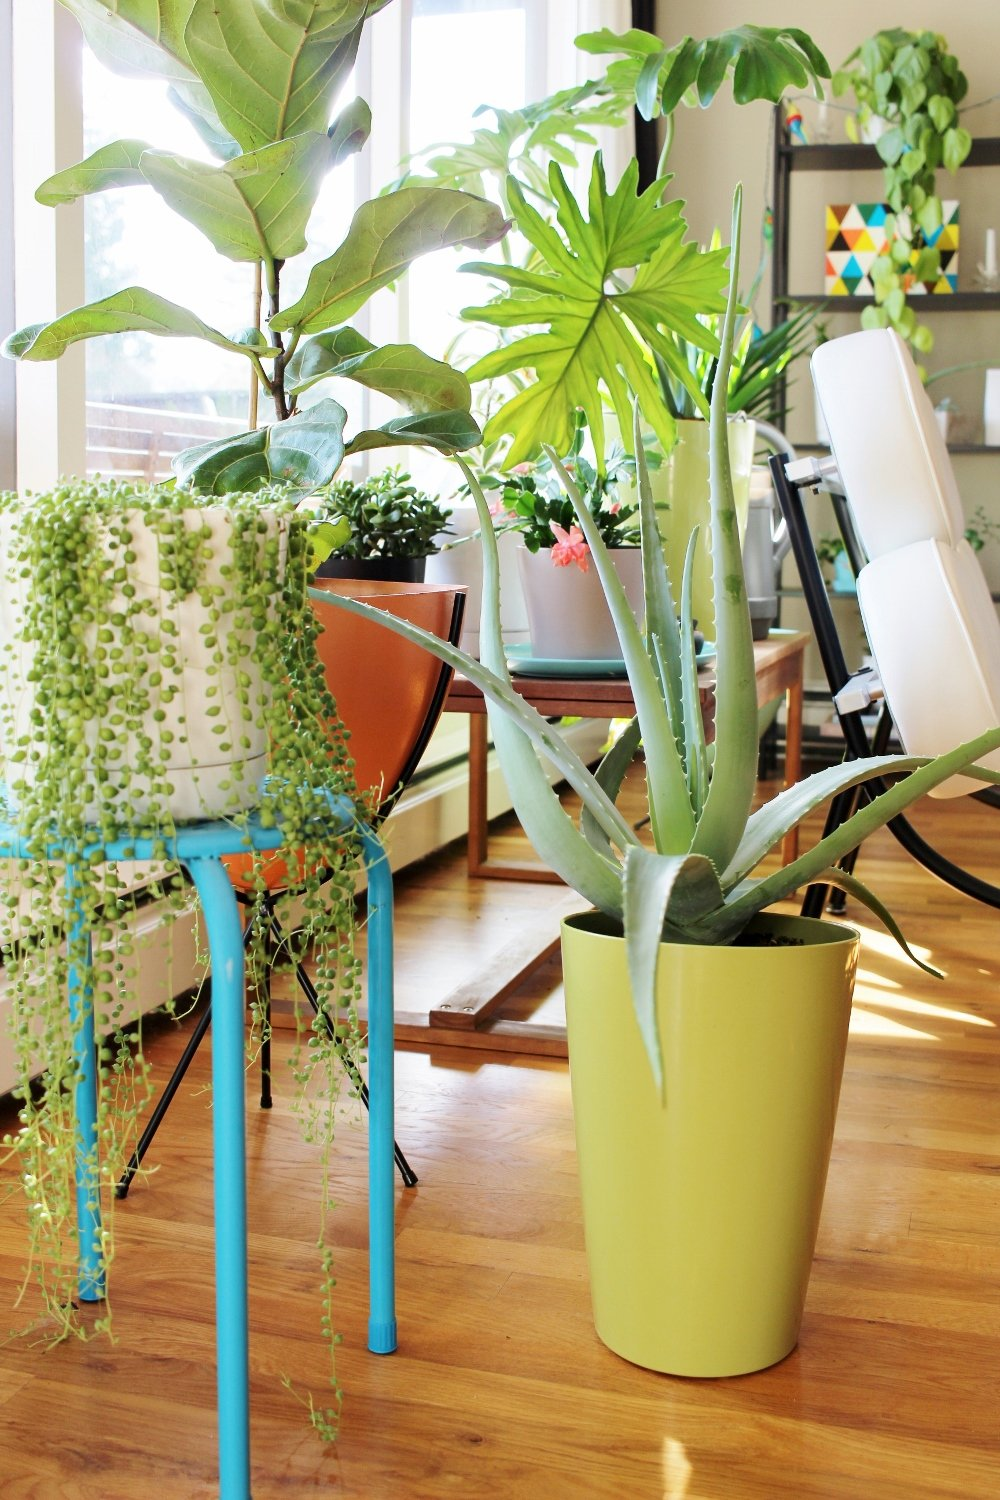 Turquoise plant stand and modern houseplant display